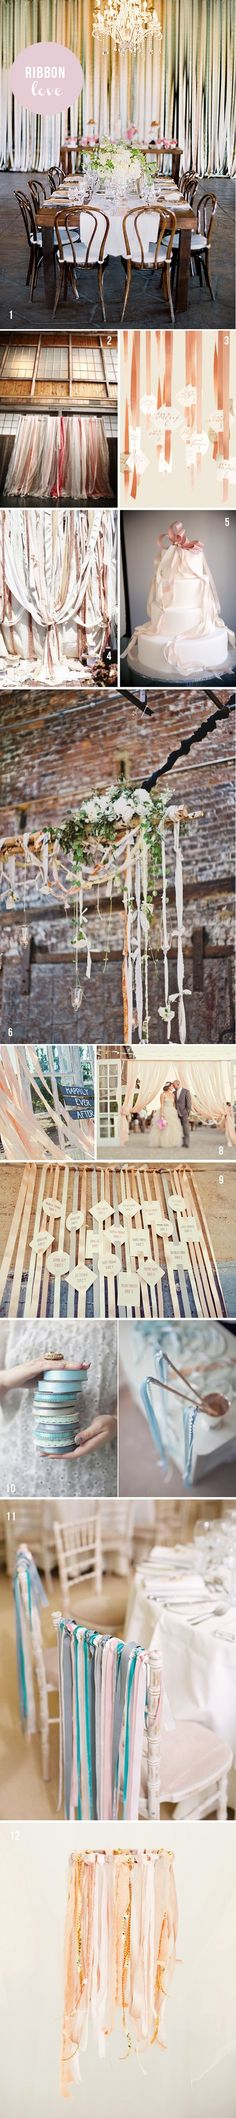 wedding ribbon ideas